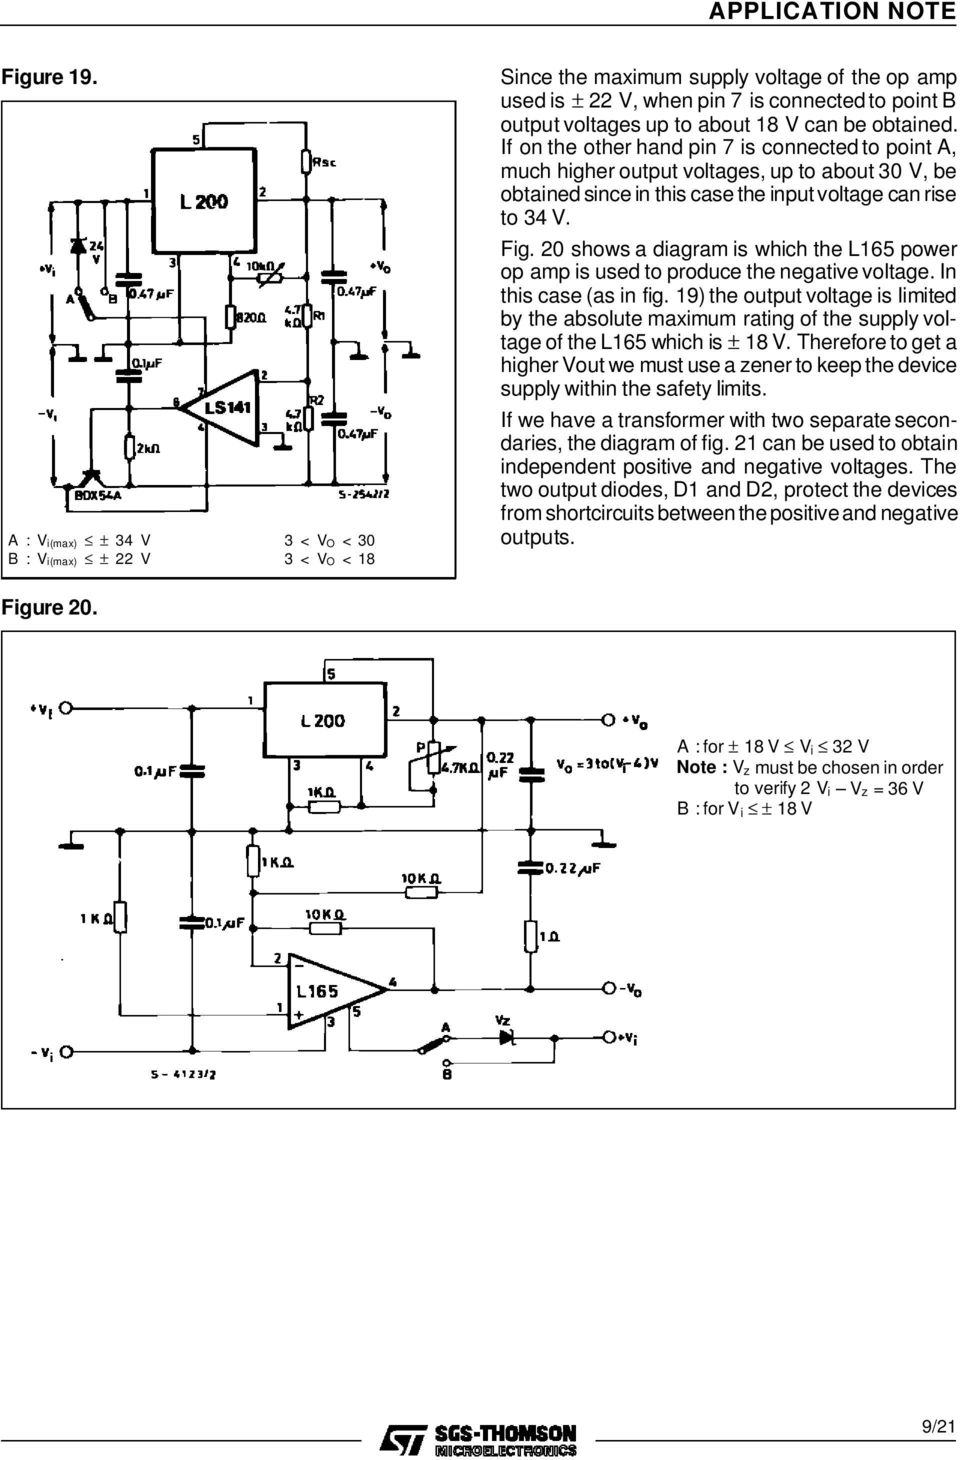 A Designer S Guide To The L200 Voltage Regulator Pdf Based Regulators Obtained If On Other Hand Pin 7 Is Connected Point Much